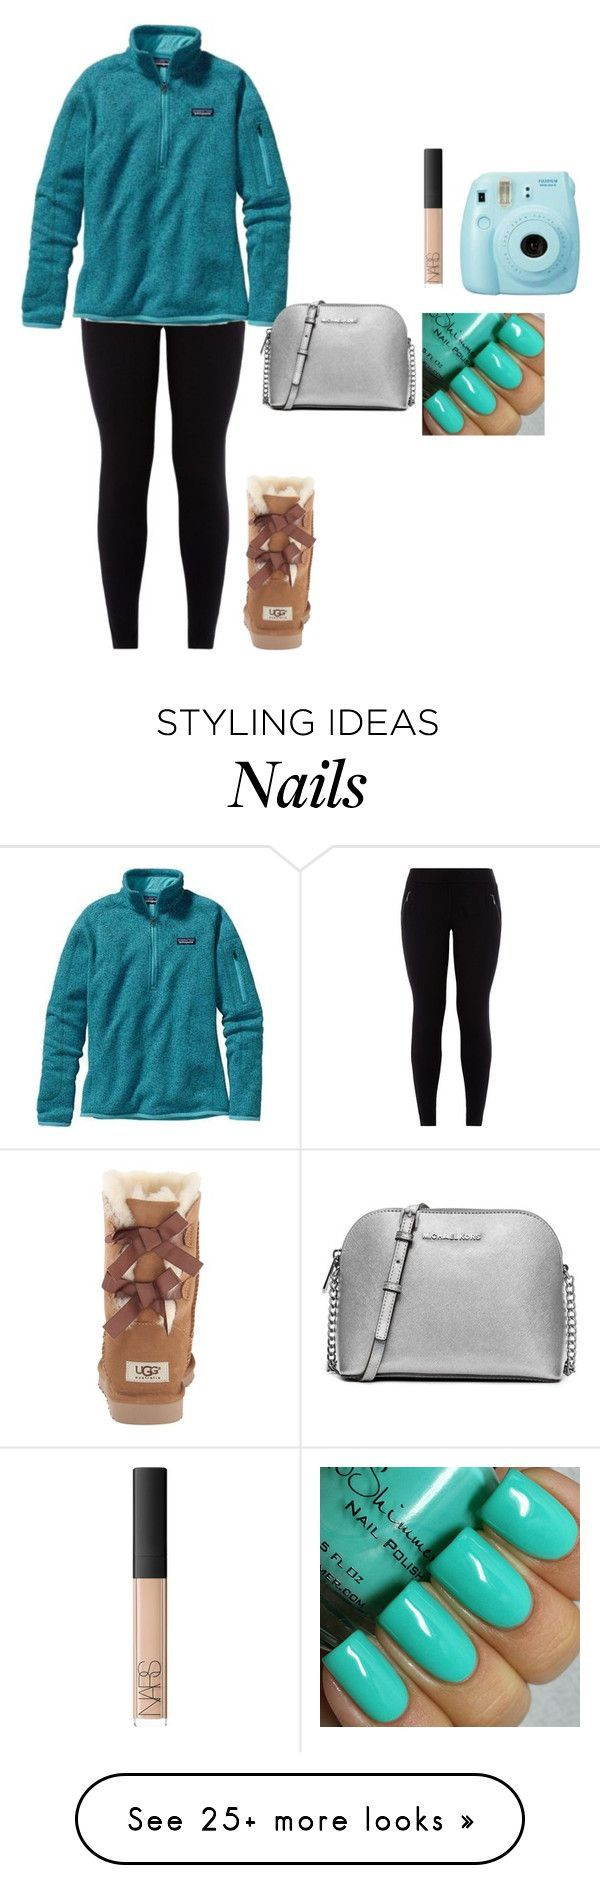 """Untitled #1026"" by jackelinhernandez on Polyvore featuring NARS Cosmetics, Patagonia, UGG Australia, MICHAEL Michael Kors, women's clothing, women's fashion, women, female, woman and misses"